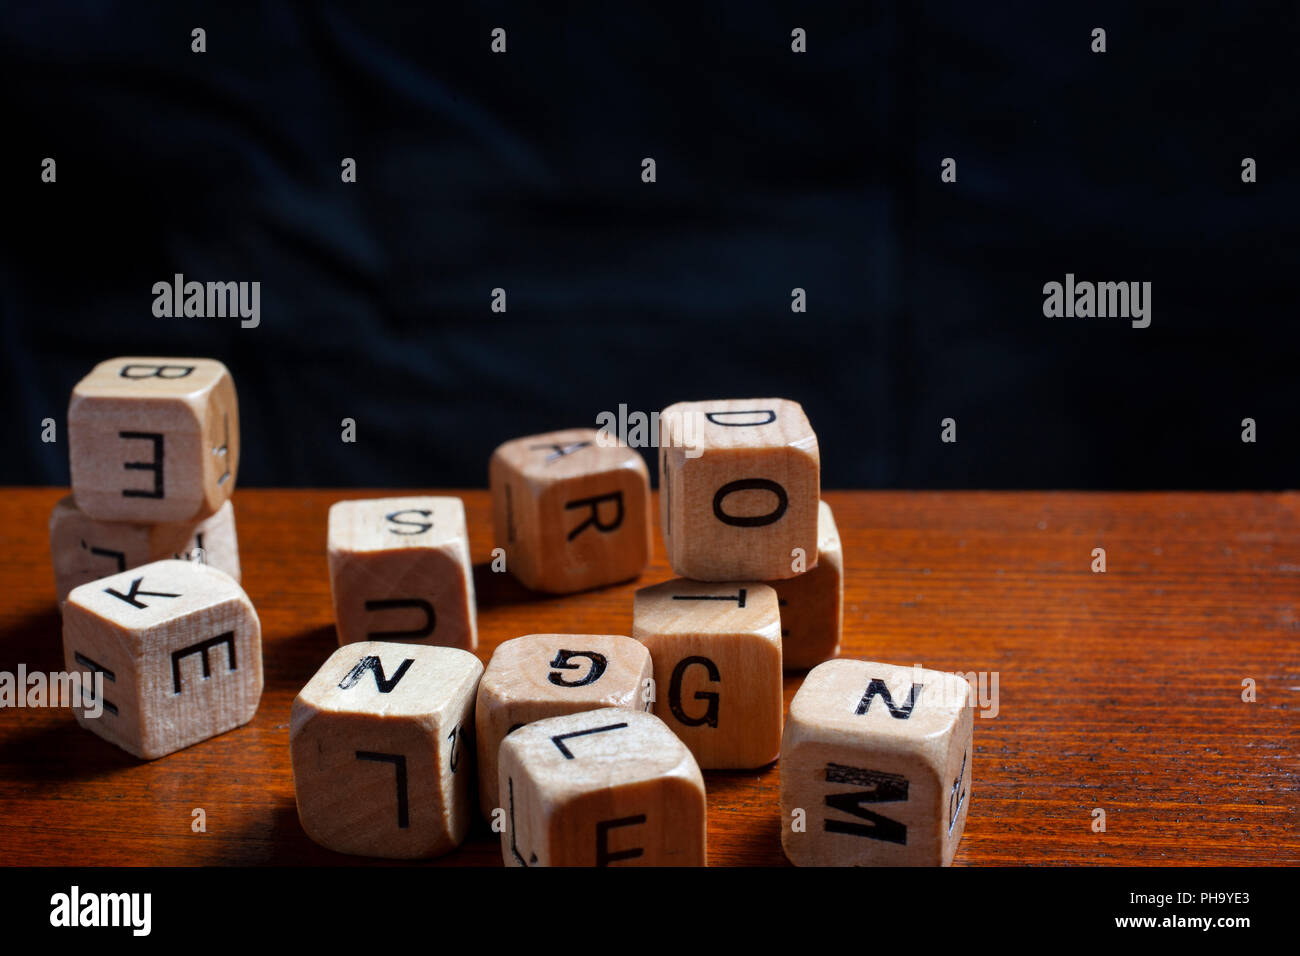 wooden letter dices - dyslexia concept - Stock Image